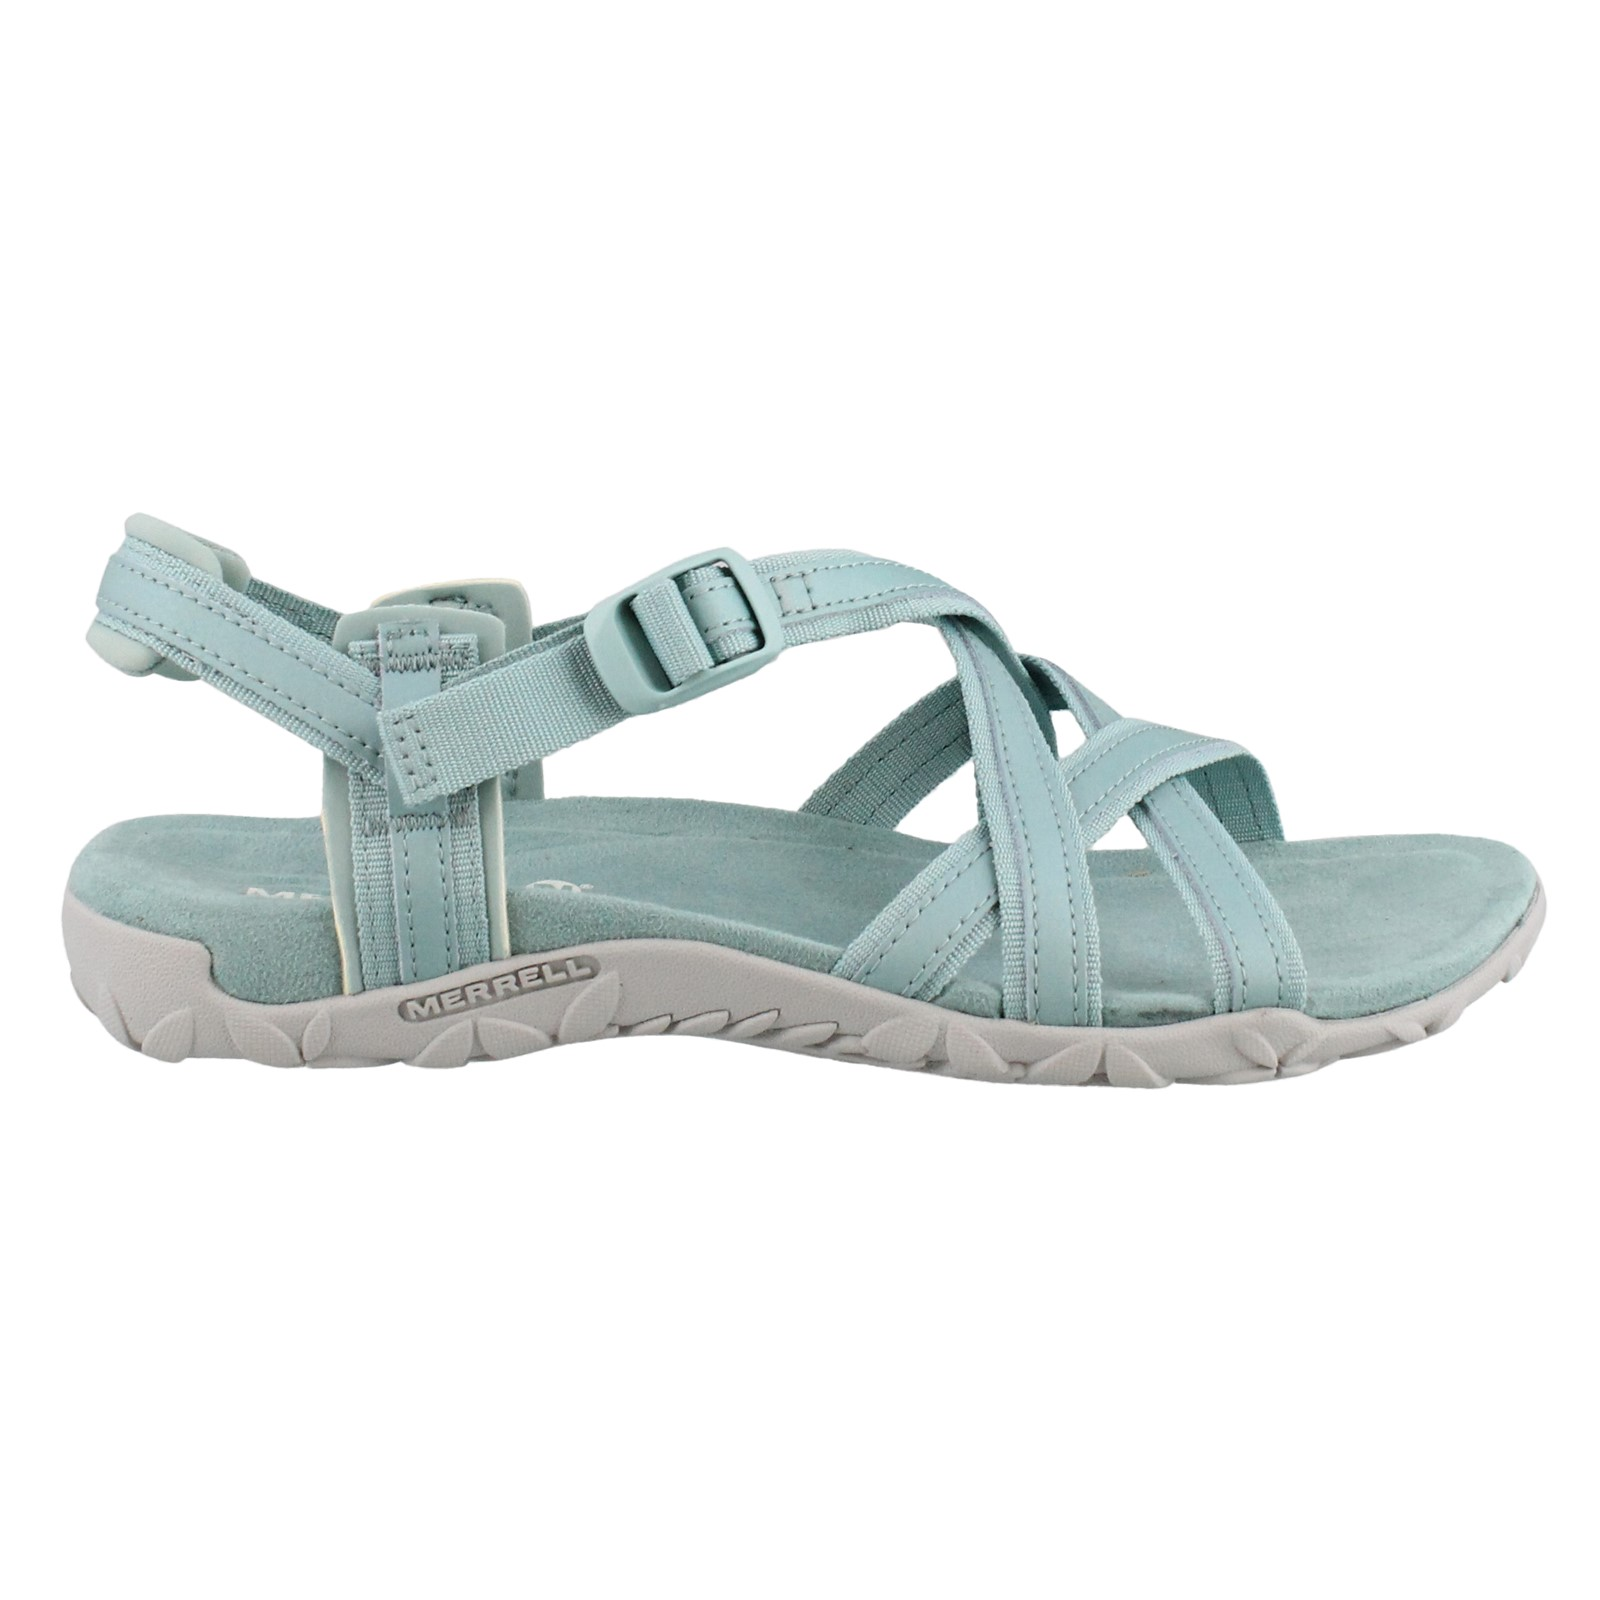 3f7926f77ba Home; Women's Merrell, Terran Ari Lattice Sandals. Previous. default view  ...